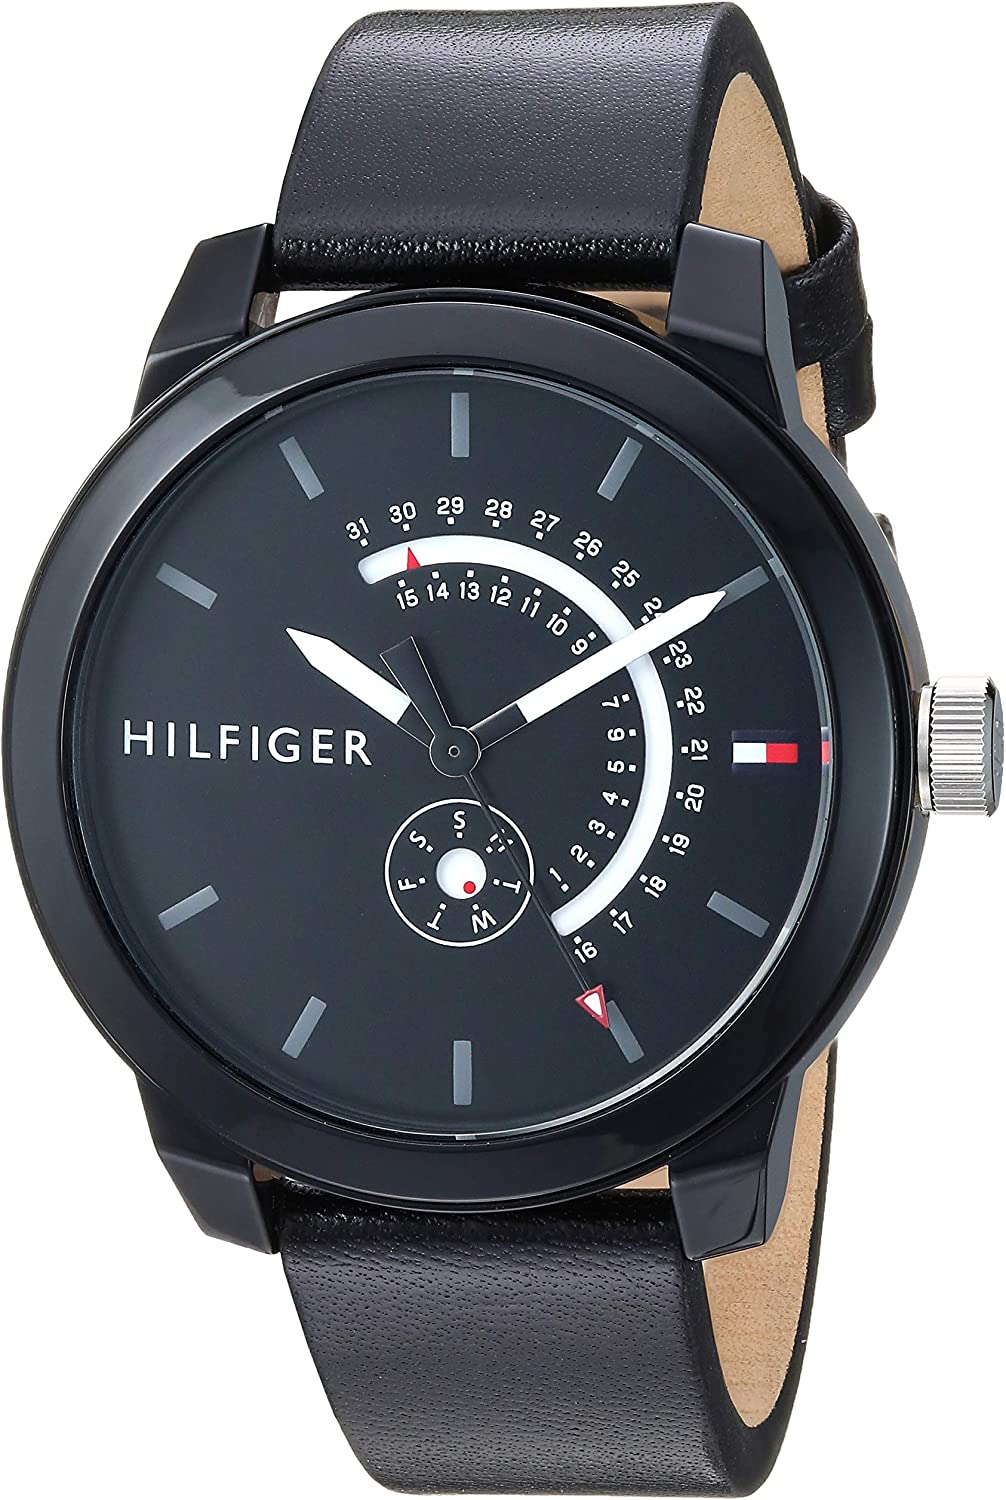 Tommy Hilfiger Mens Quartz Watch with Leather Calfskin Strap  Black  18 8  Model  1791479